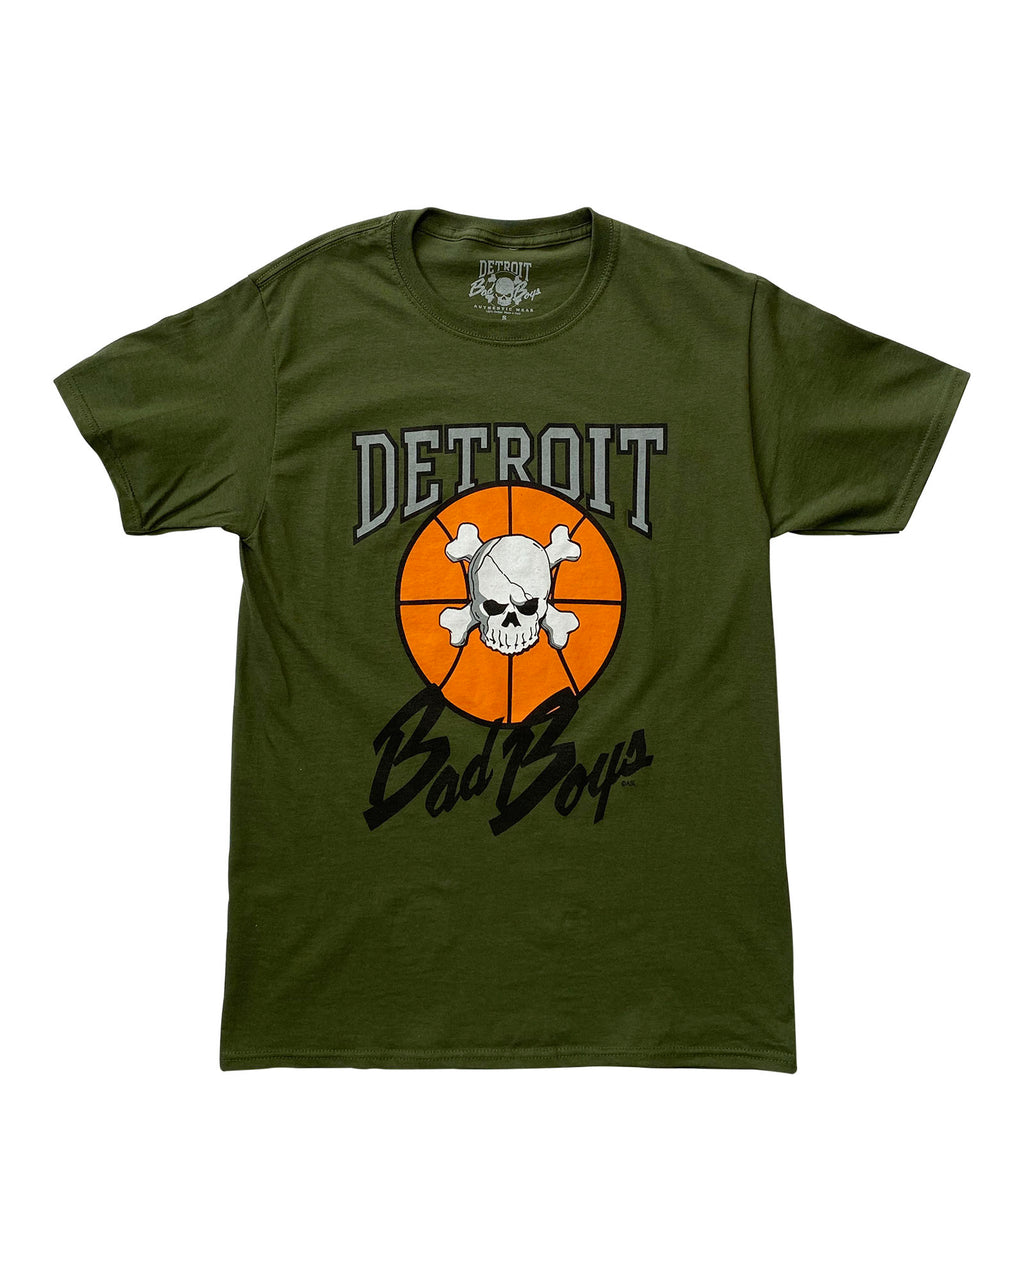 Authentic Detroit Bad Boys Military Green T-Shirt